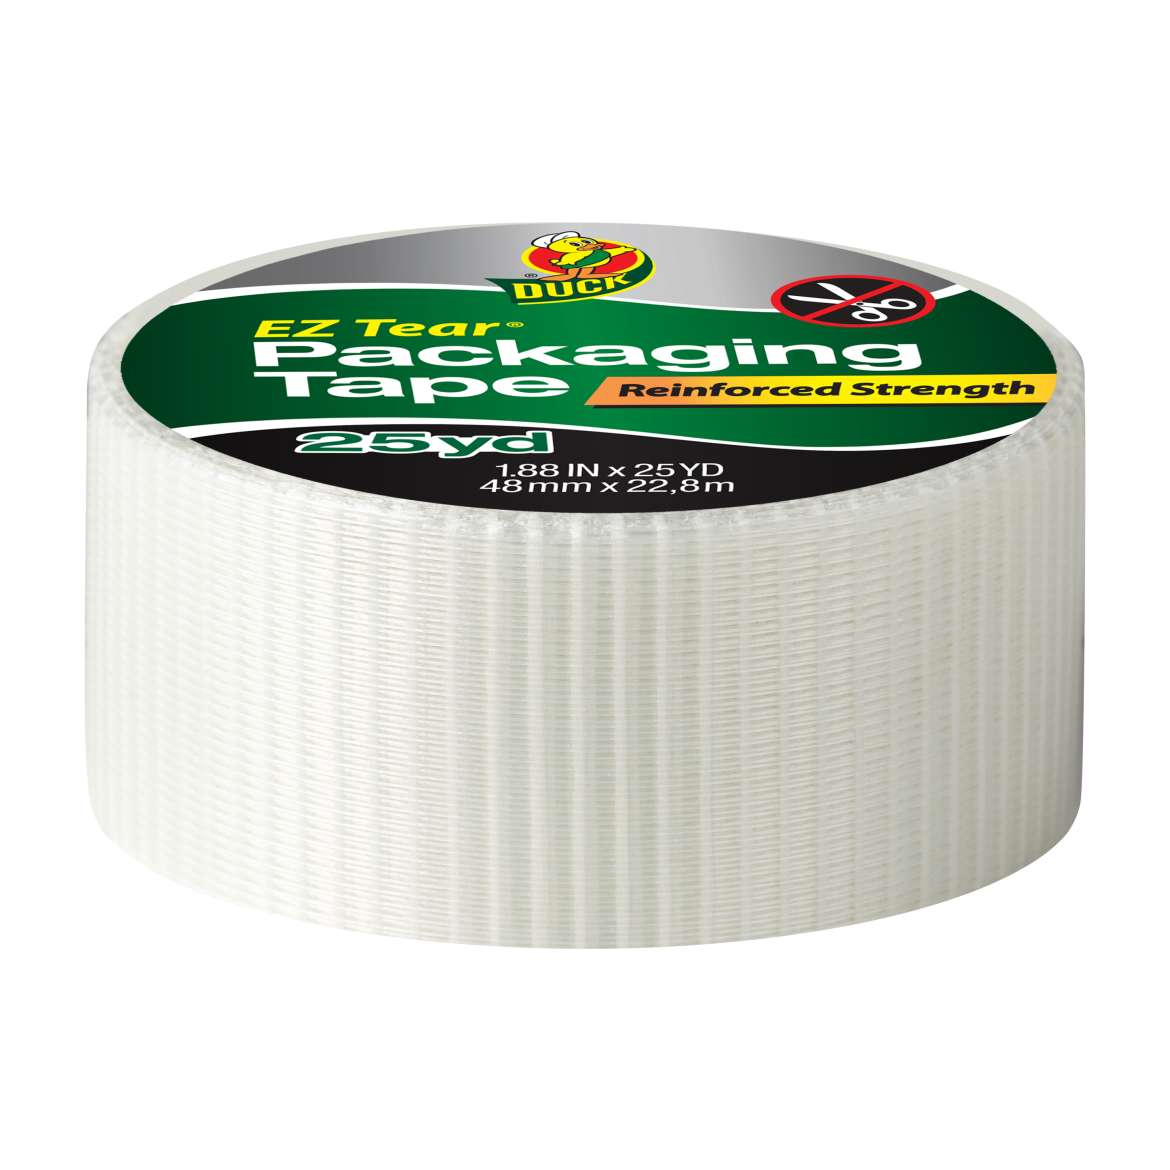 Duck® Brand EZ Tear® Packing Tape